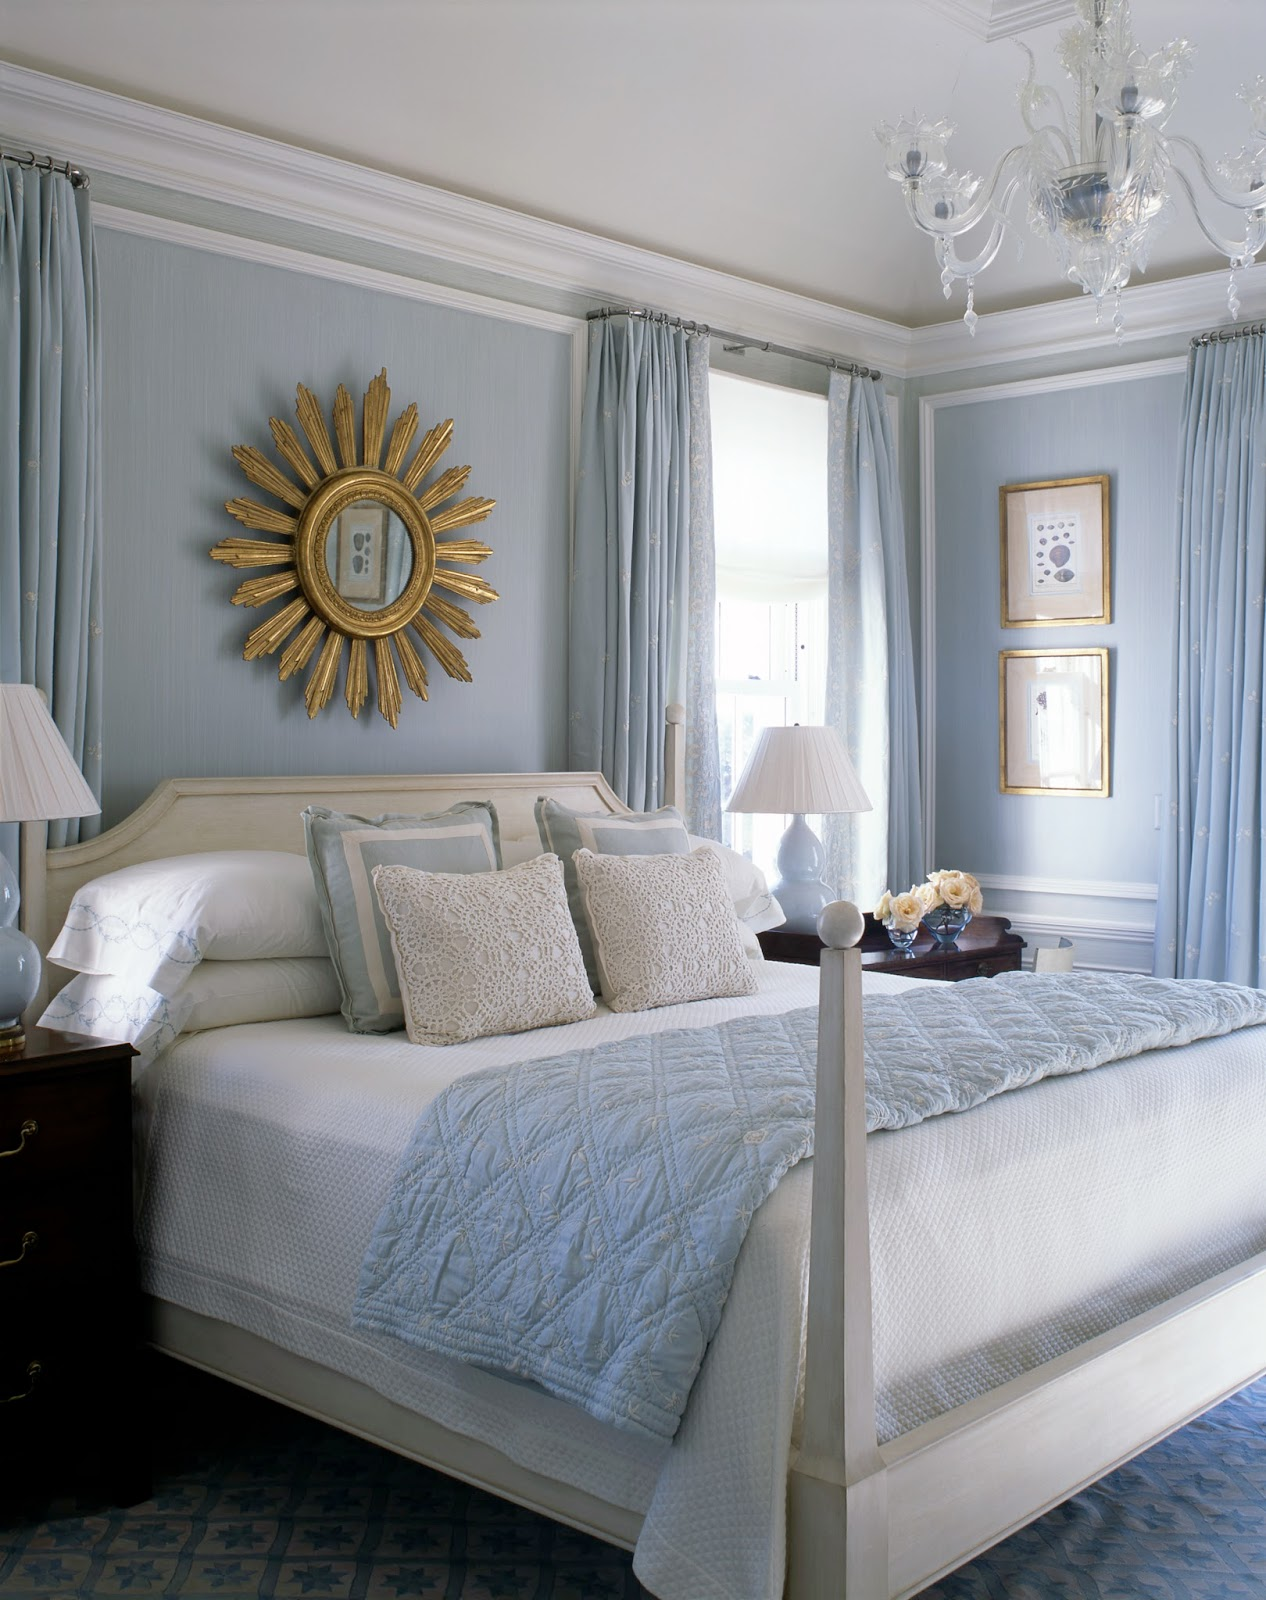 Pictures Of Blue Bedrooms A Blue And White Beach House By Phoebe And Jim Howard